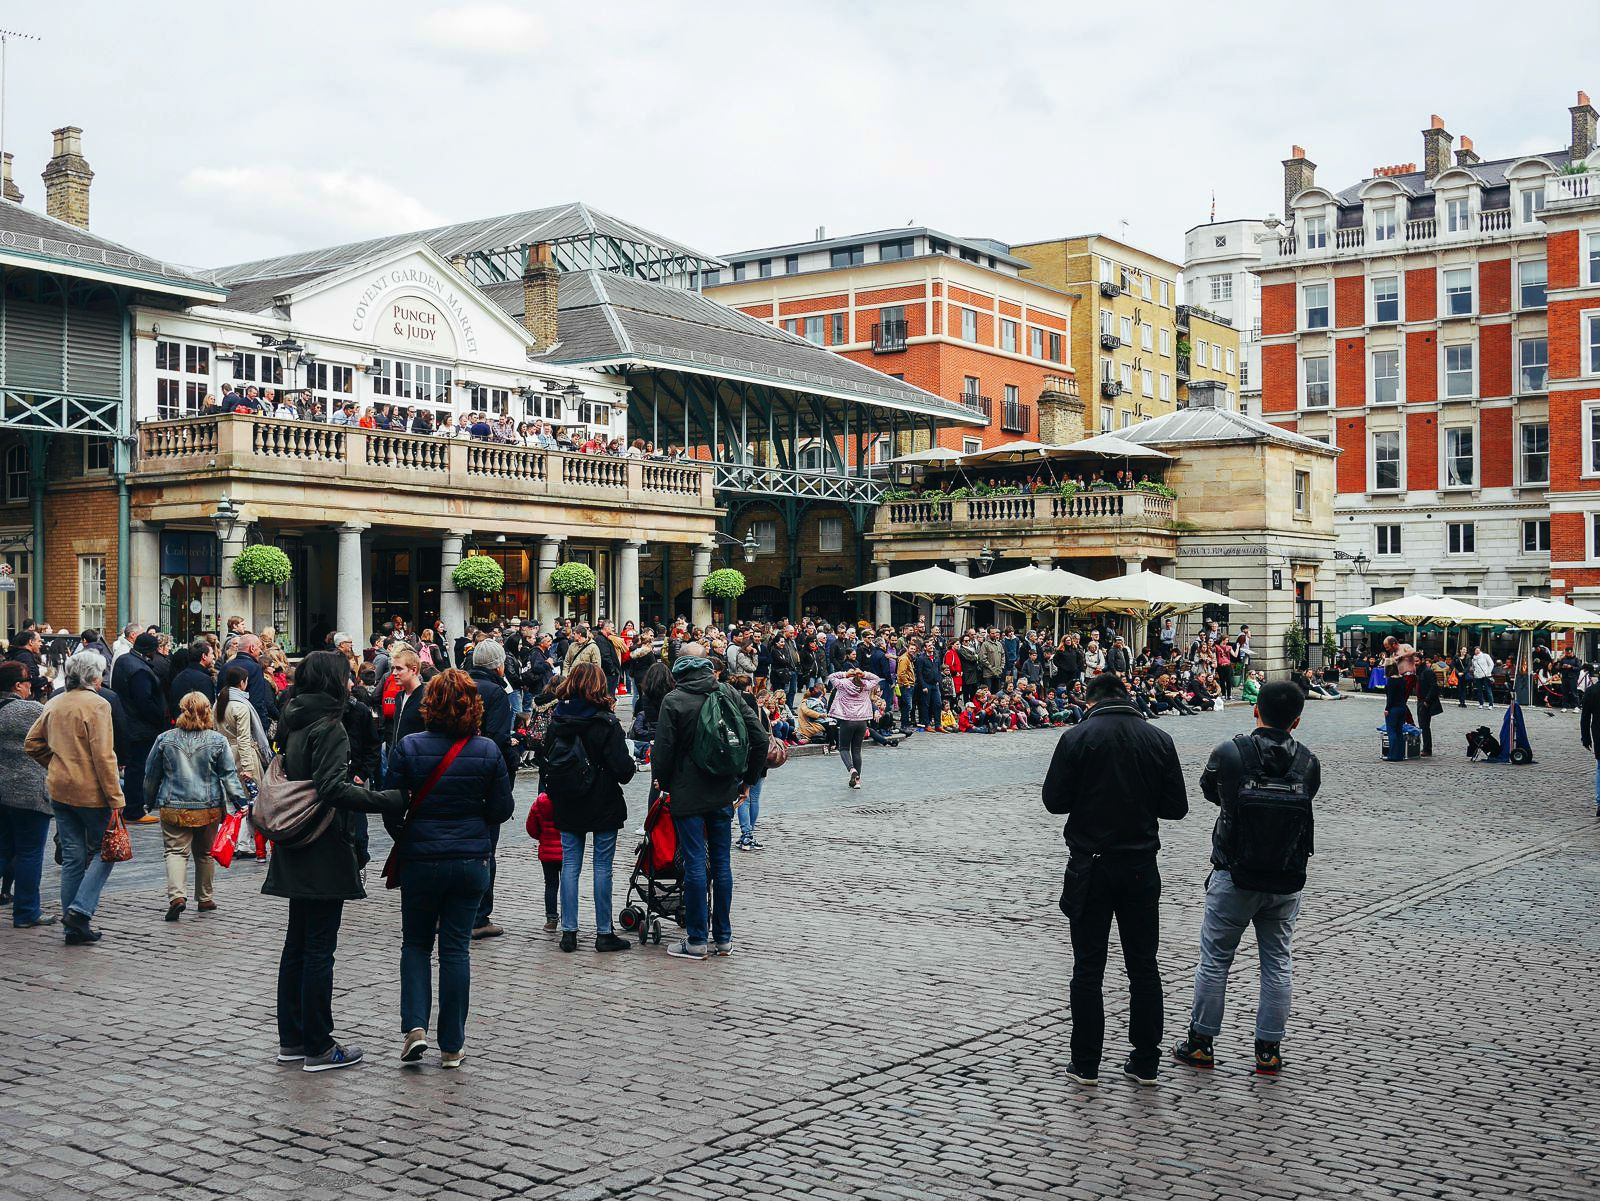 London's Most Famous District: Covent Garden - What To See, Eat & Do! (13)